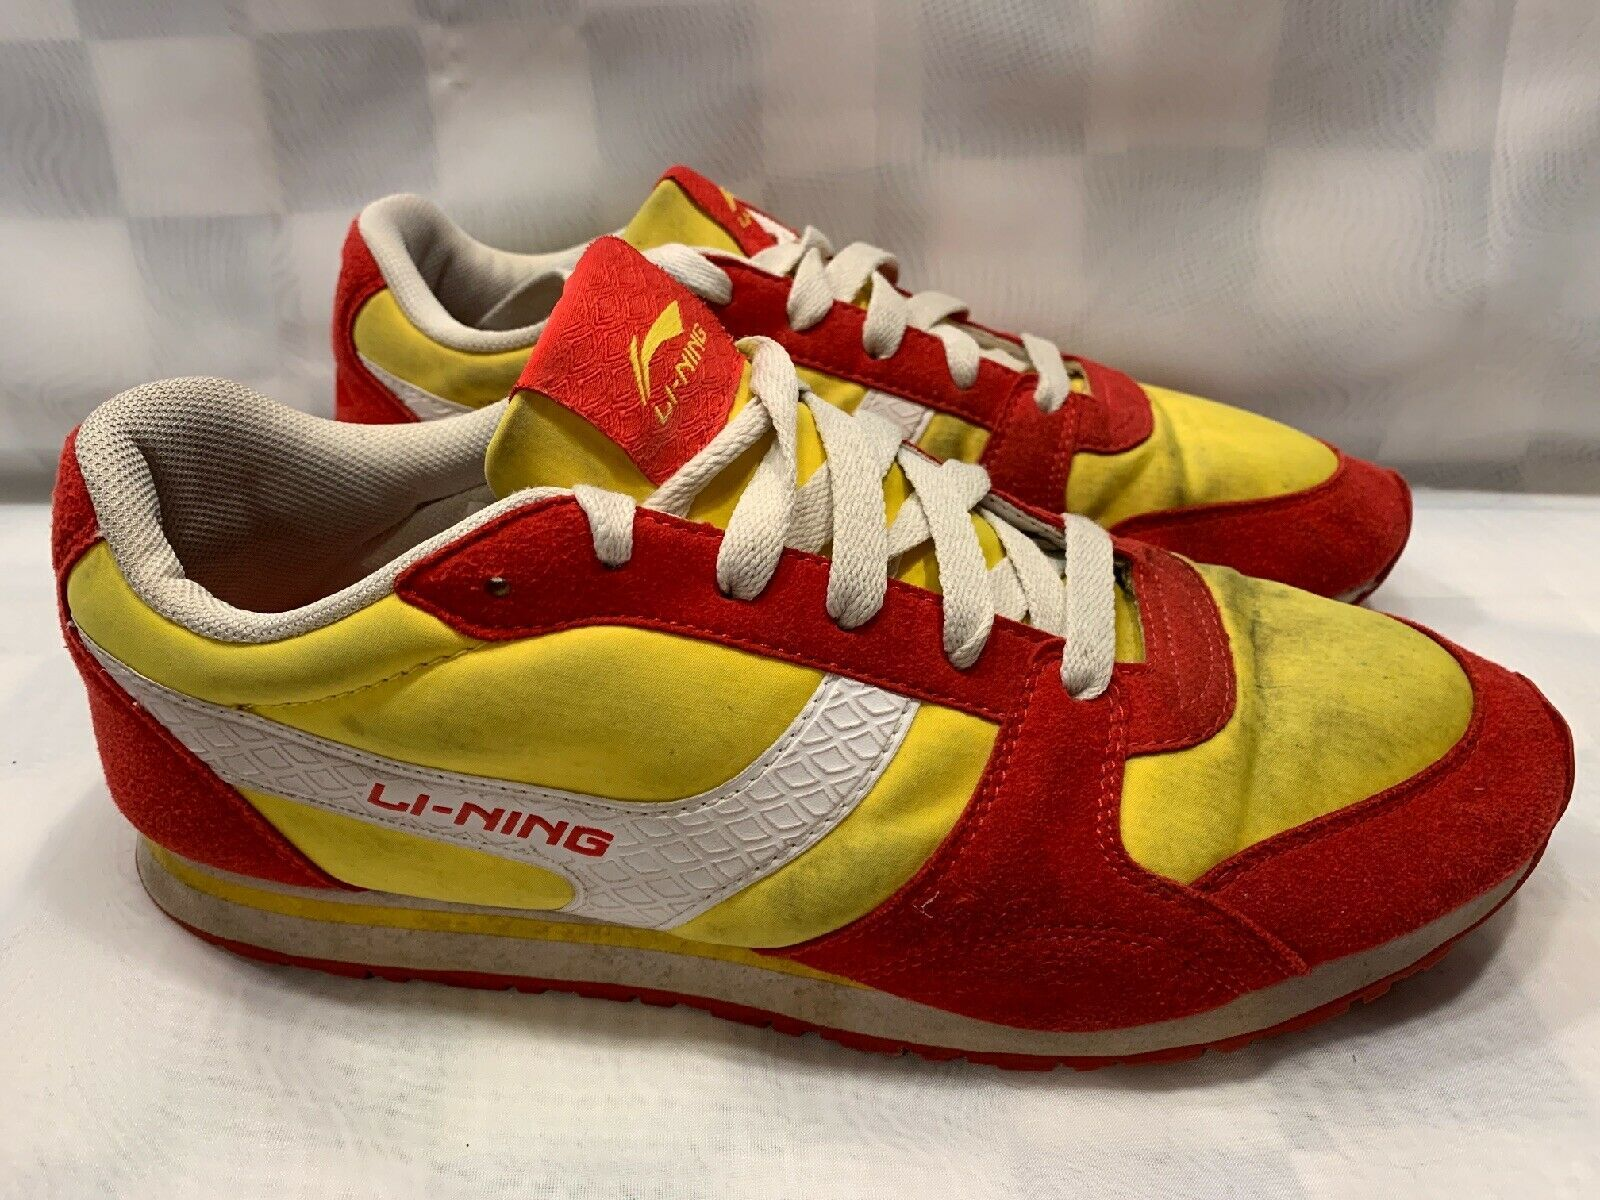 "Primary image for LI-NING Classic ""Make the Change"" Men's Shoe Size 10.5 Red Yellow ALCG129-1"